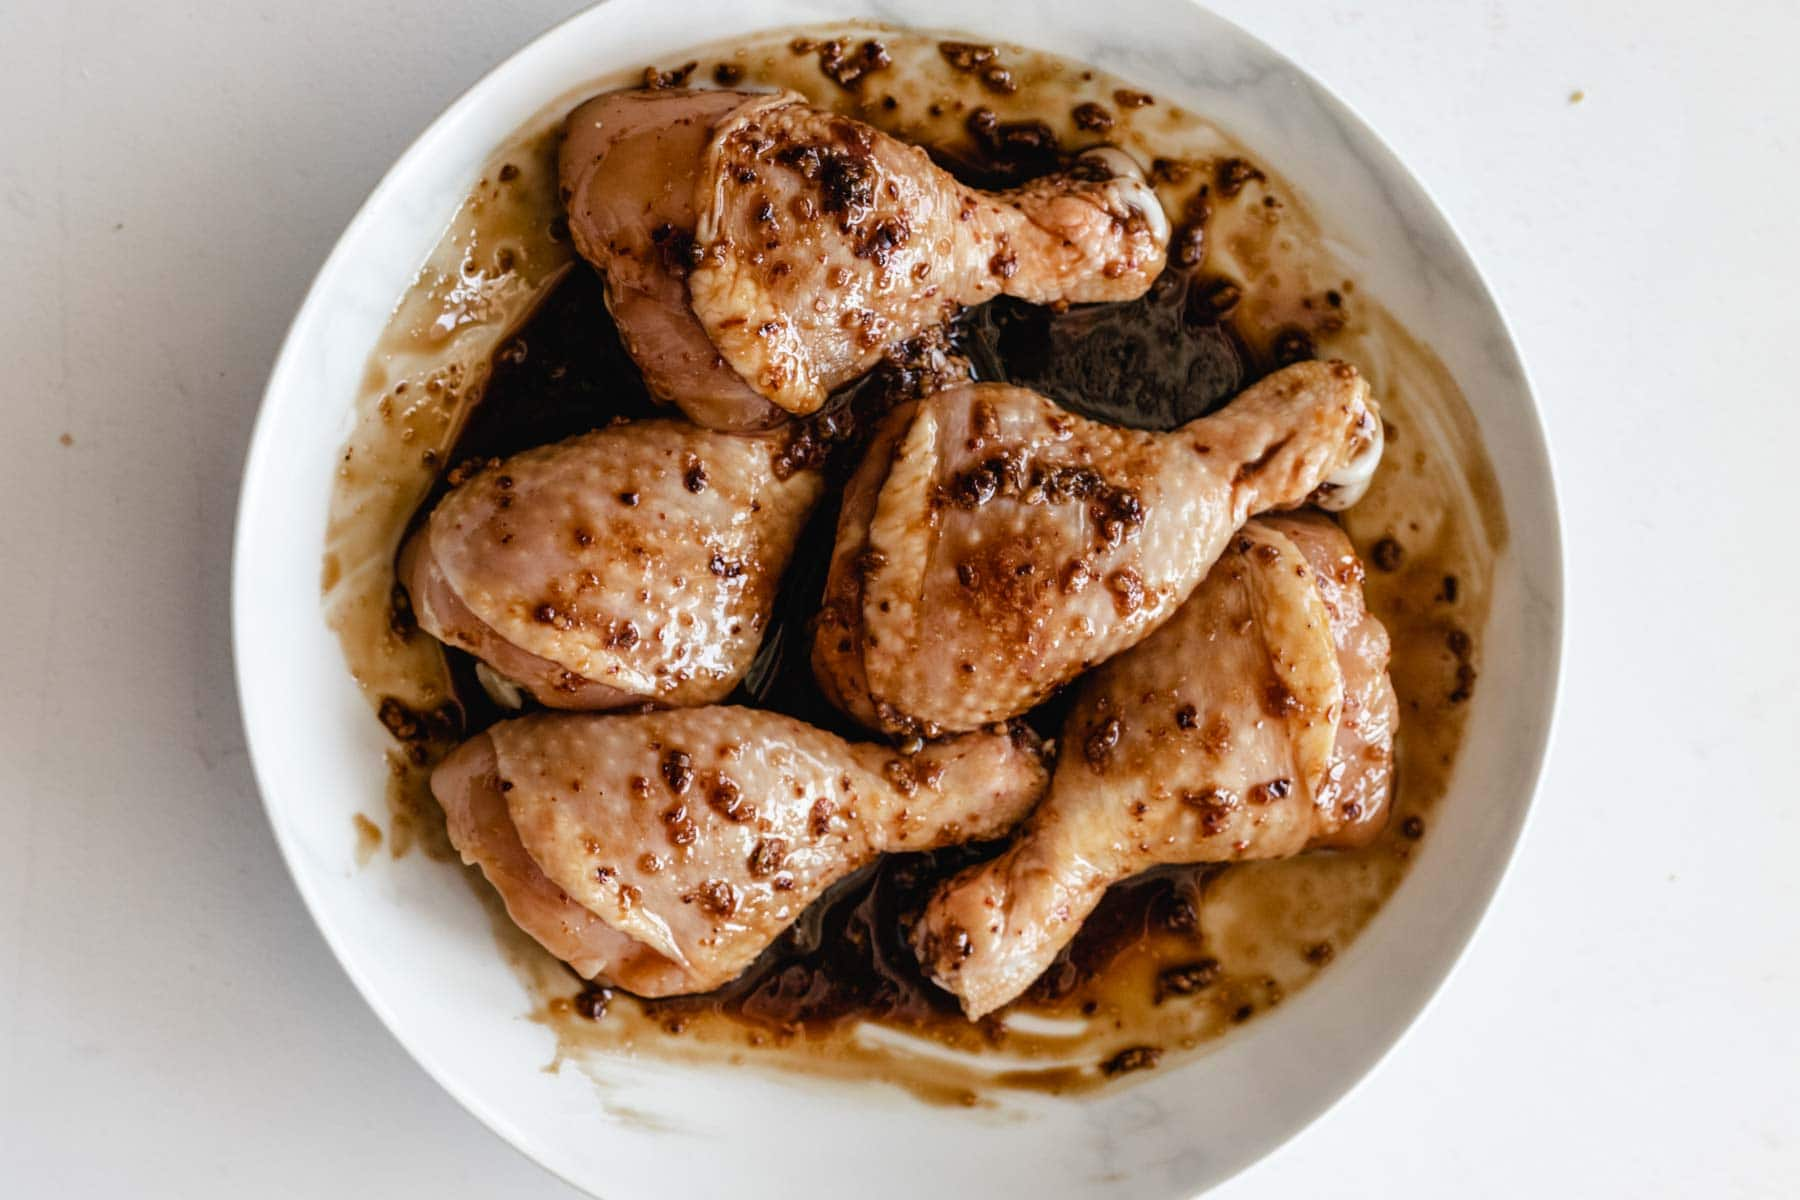 Marinated chicken drumsticks on a plate